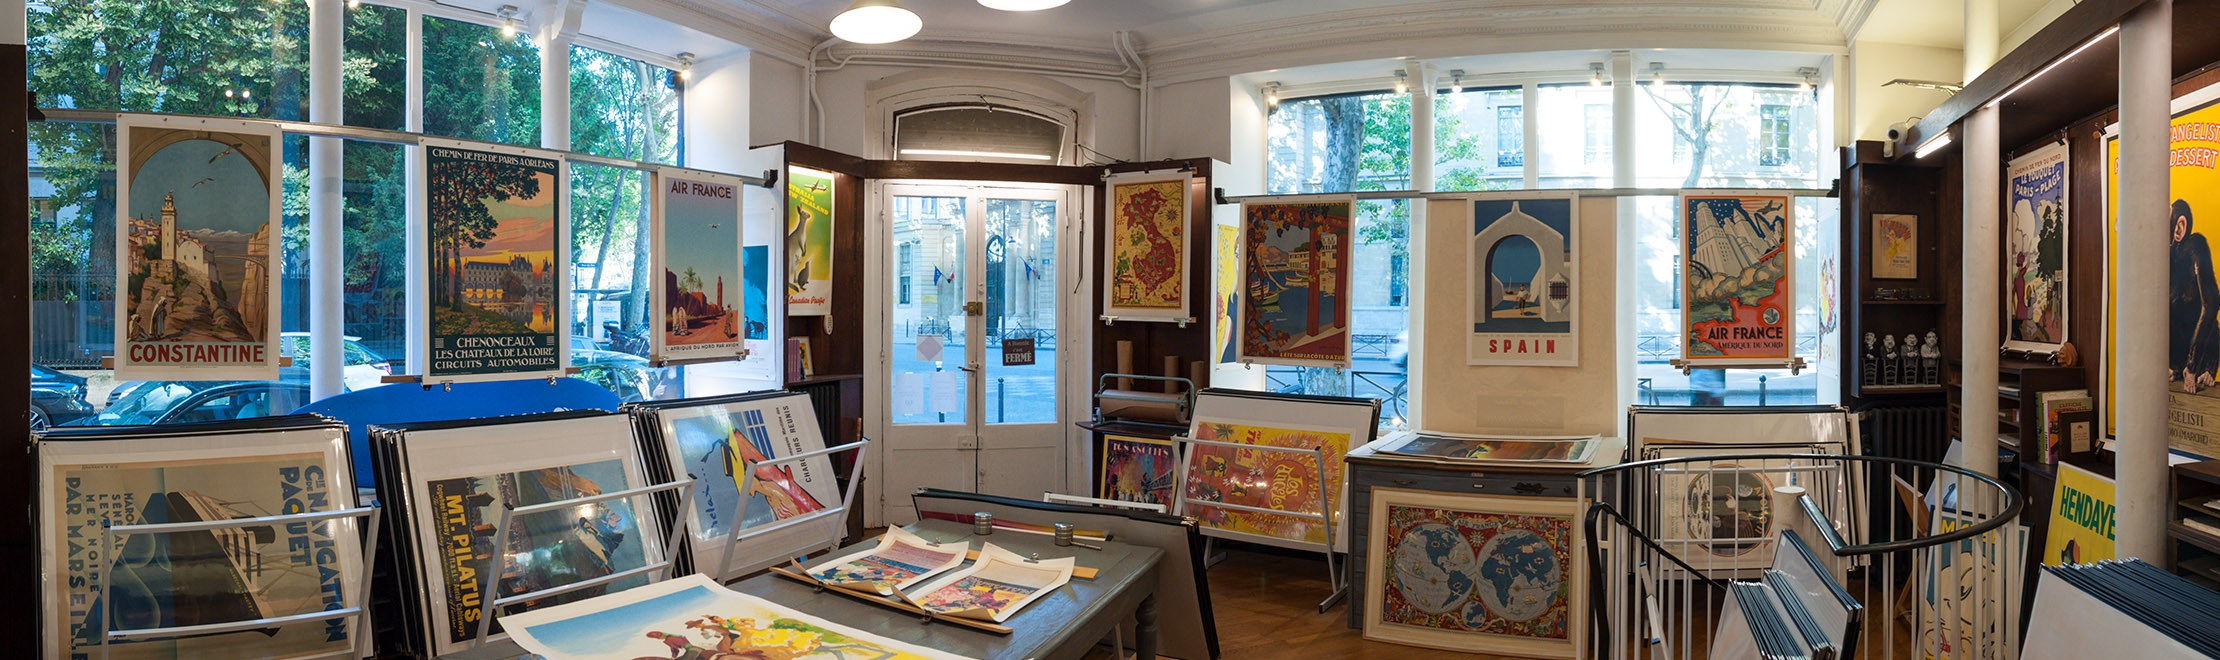 Affiches Anciennes Paris France 213bis Boulevard Saint Germain